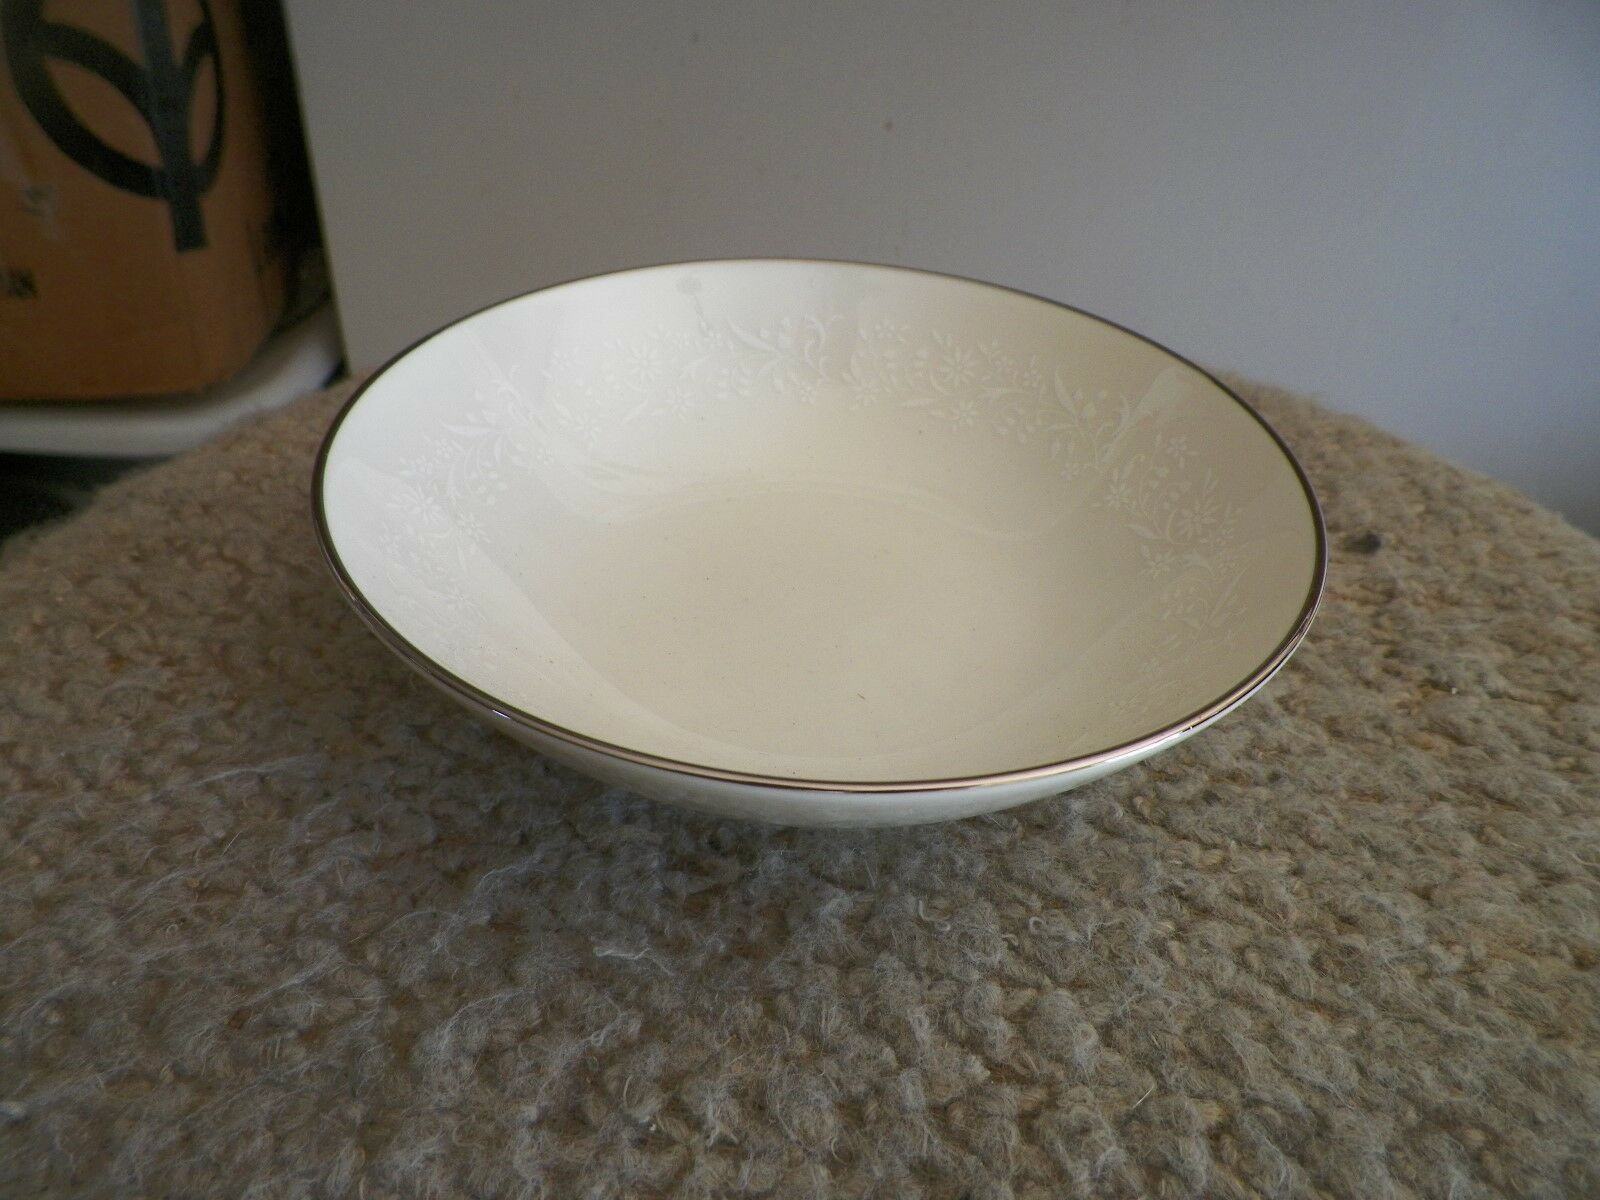 Noritake Lorelei cereal bowl 1 available - $8.86